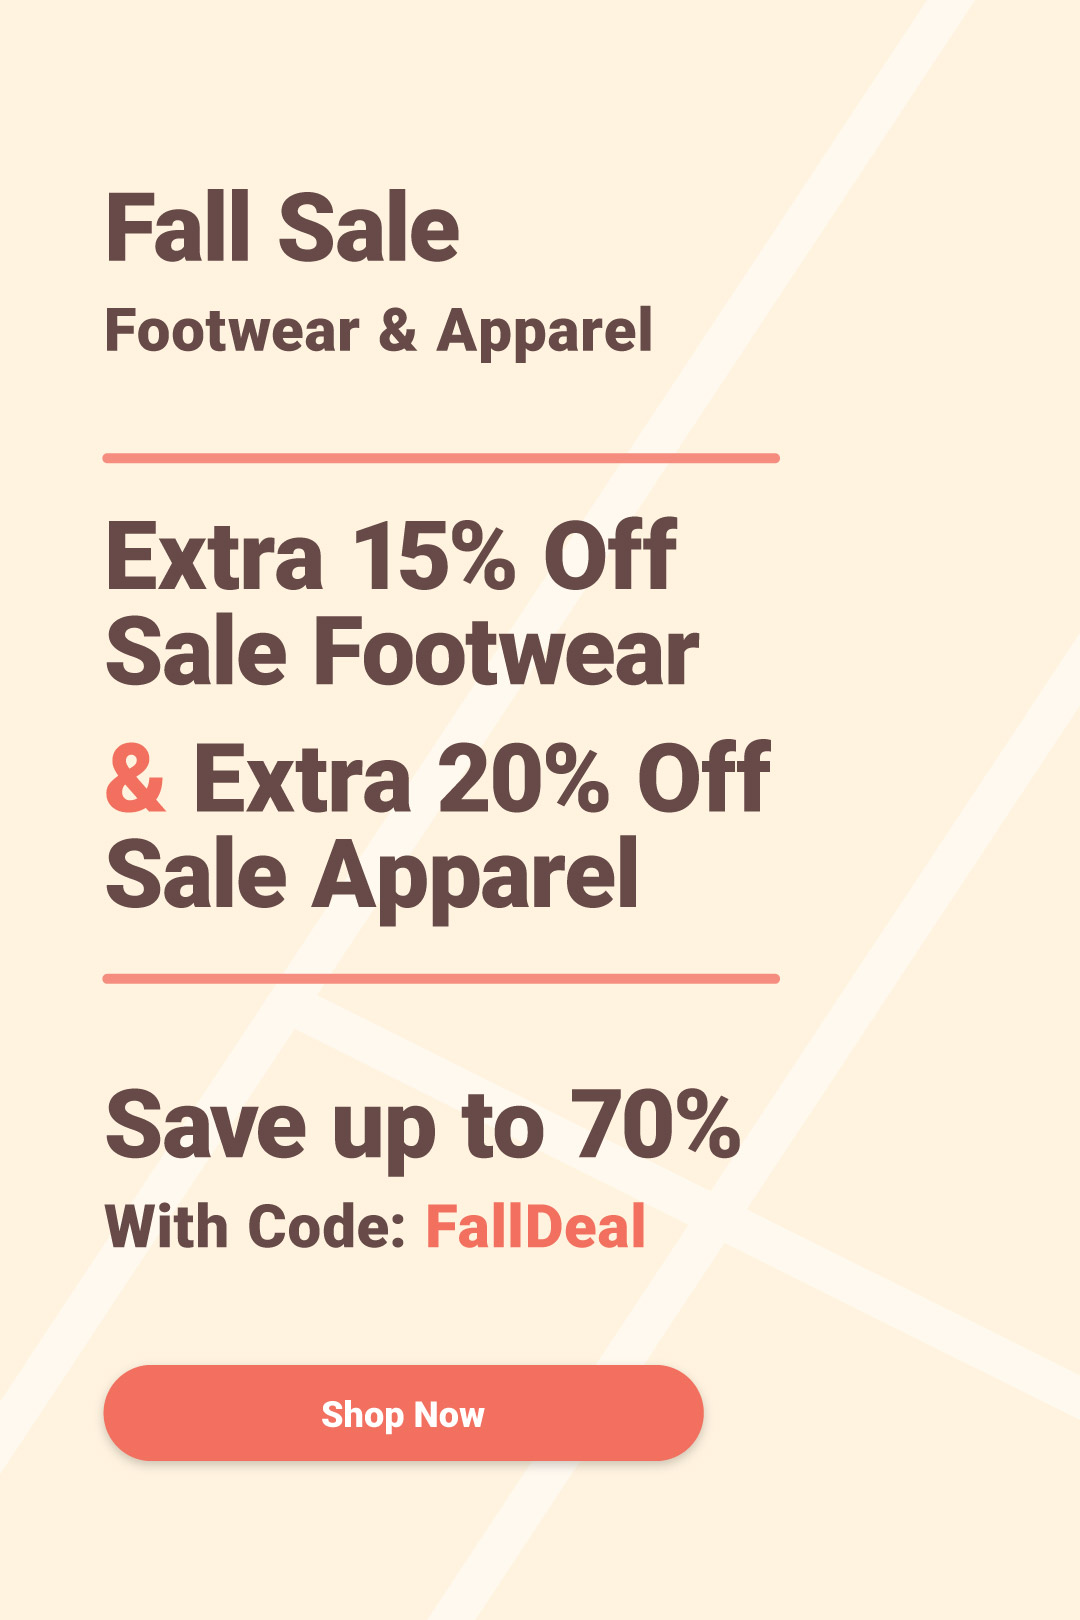 Fall Apparel and Shoe Sale